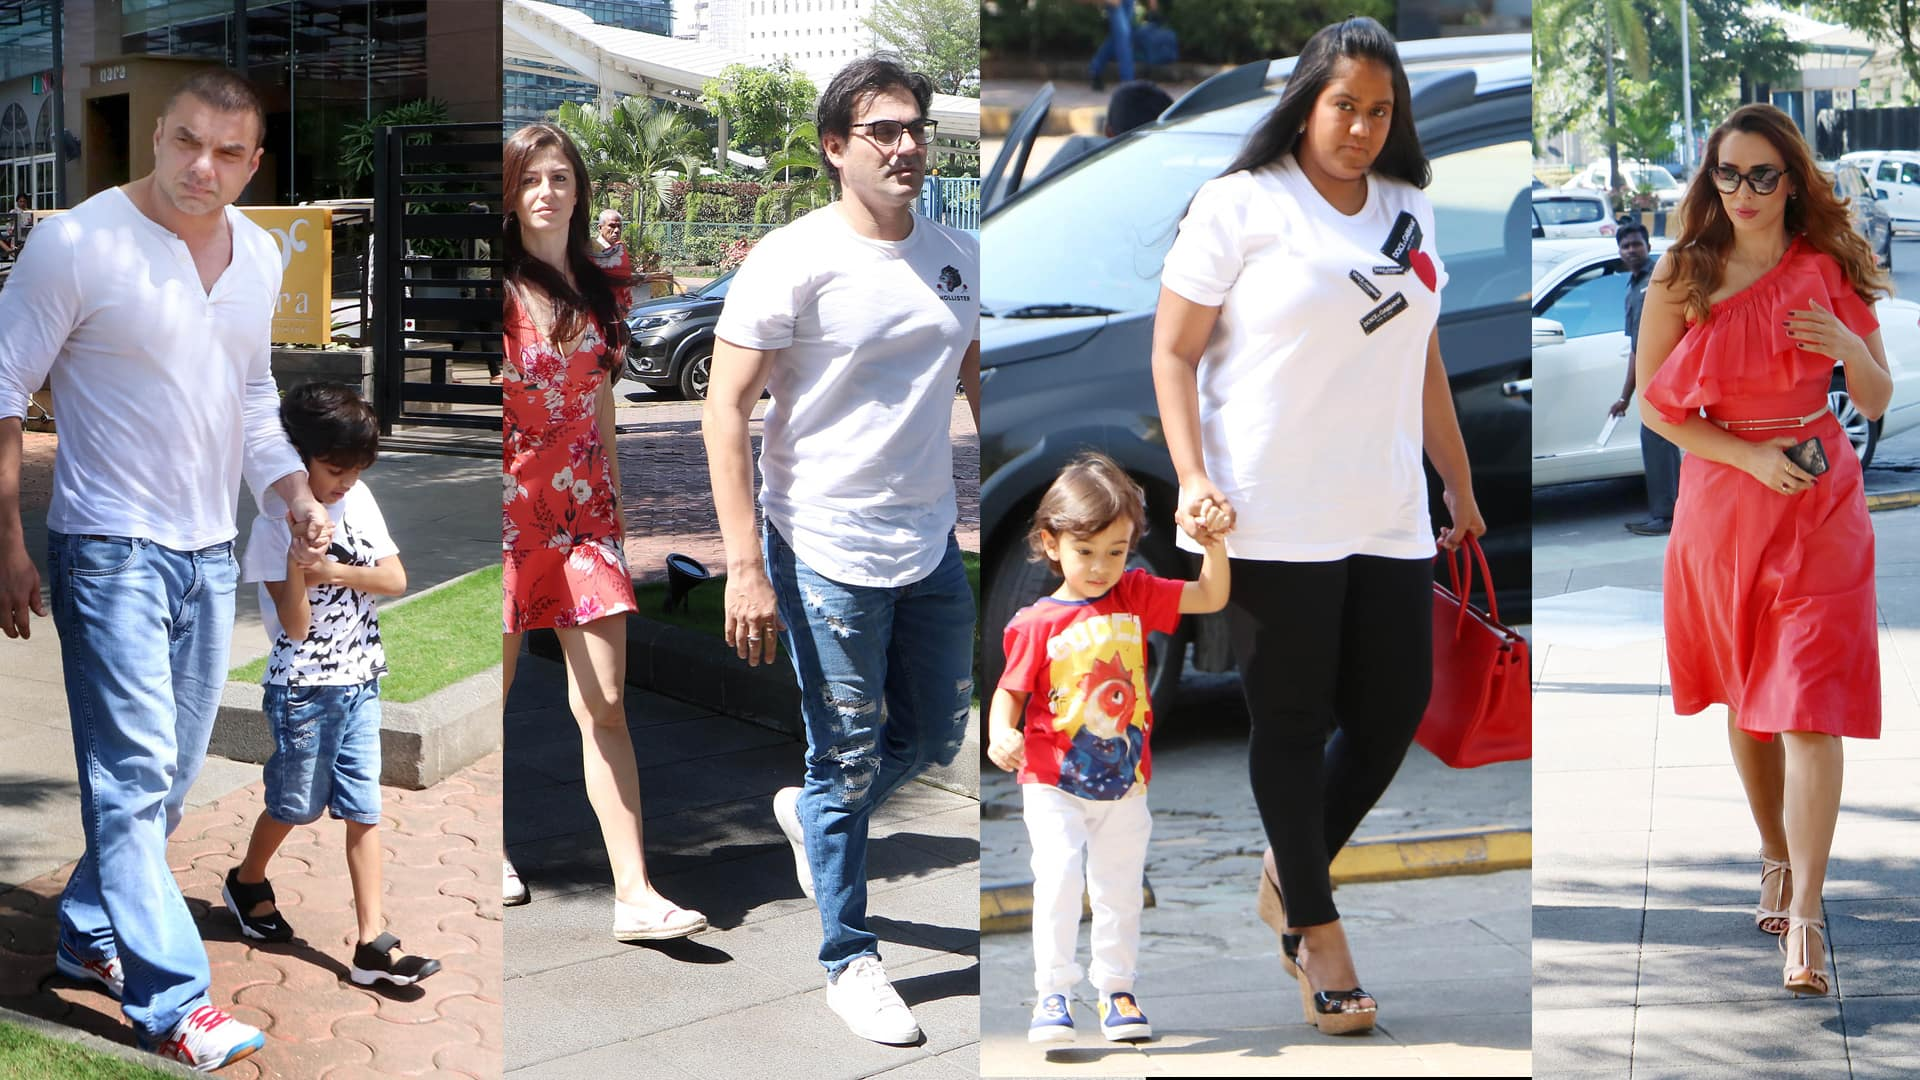 salman khan family go together for lunch date, salman and arbaz girlfriend also their